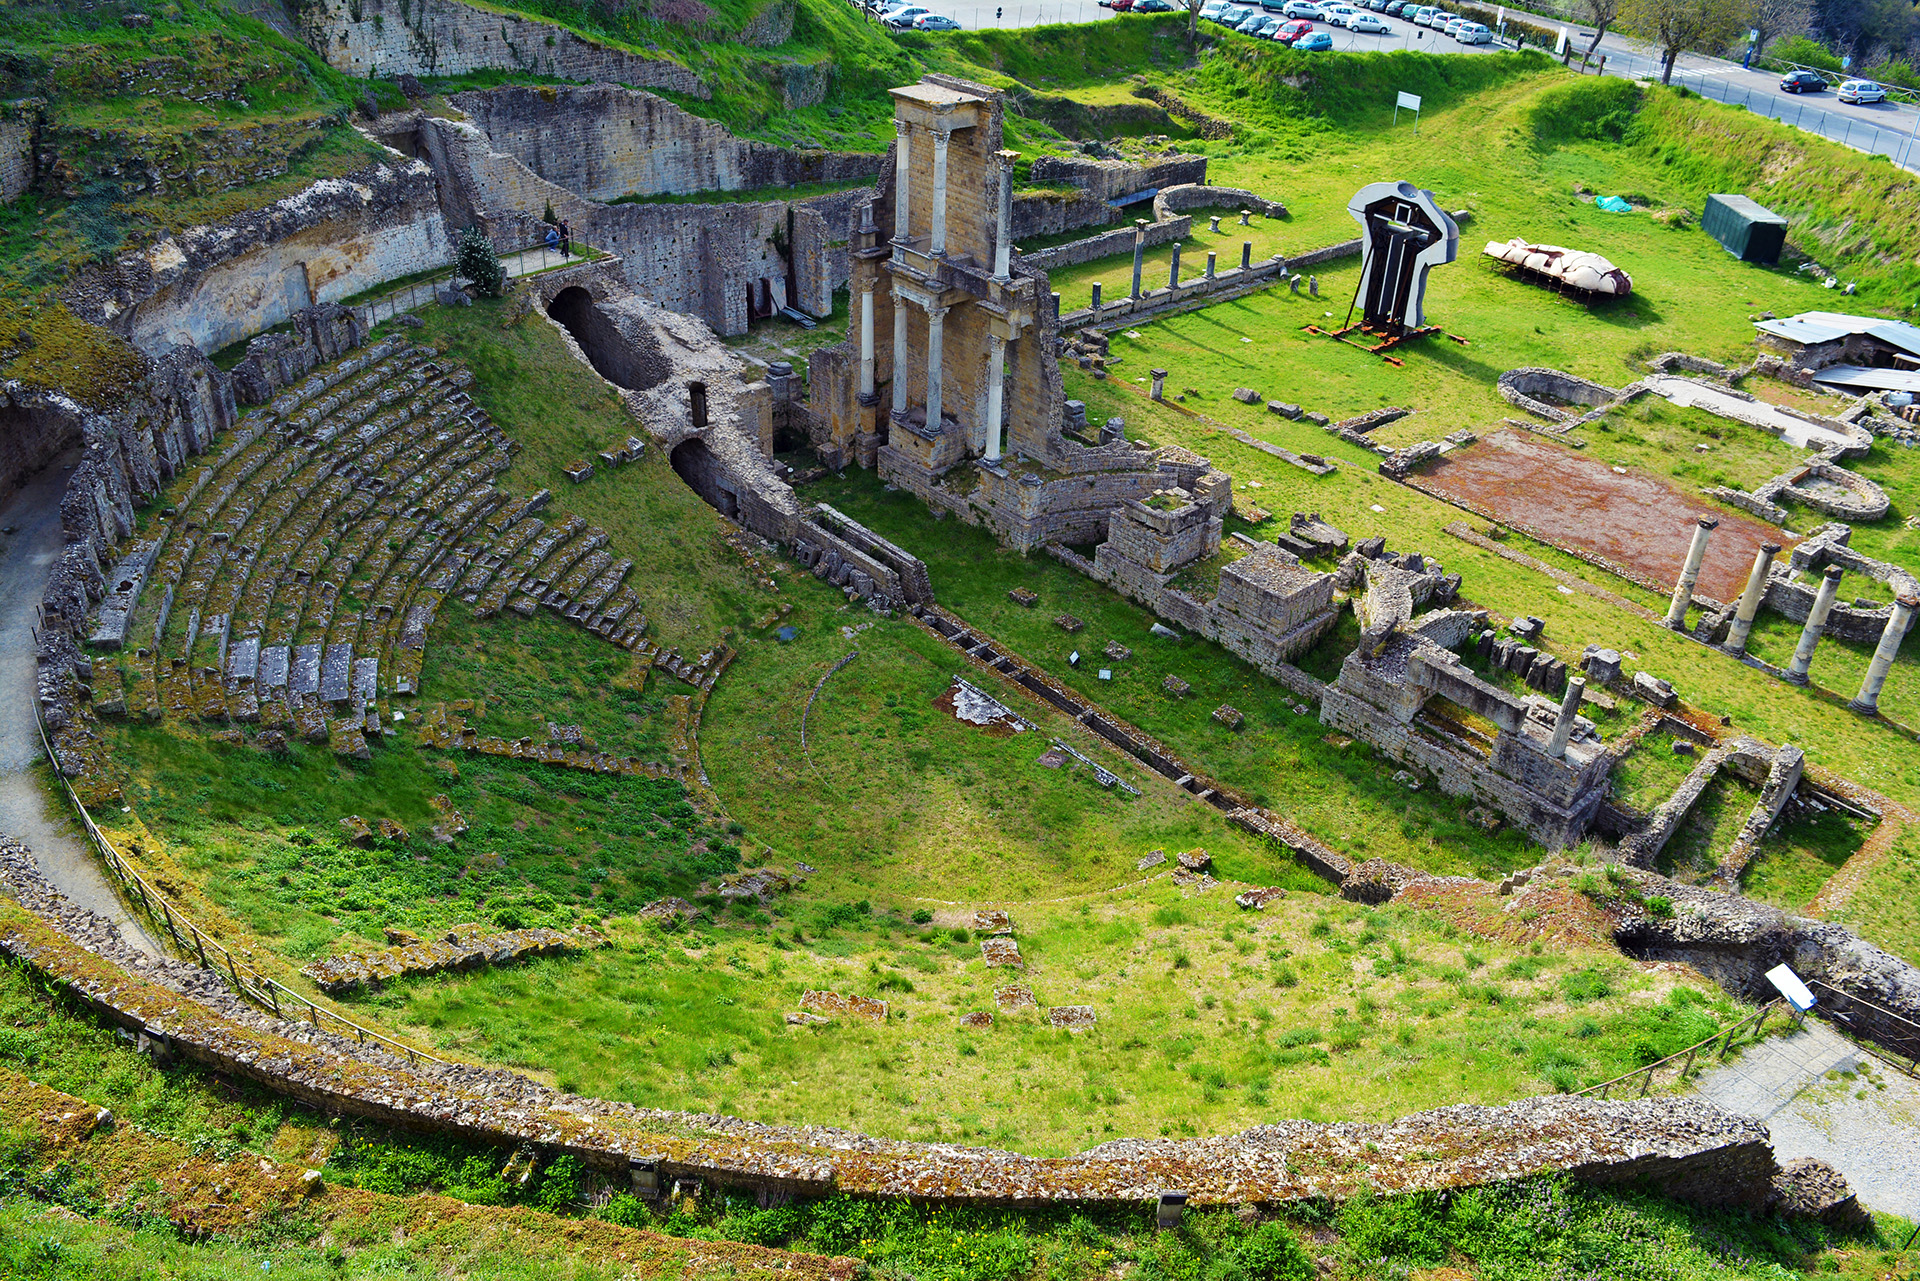 Teatro di Vallebona, remains of a Roman amphitheatre built in the 1st century BC in Volterra, Tuscany, Italy.